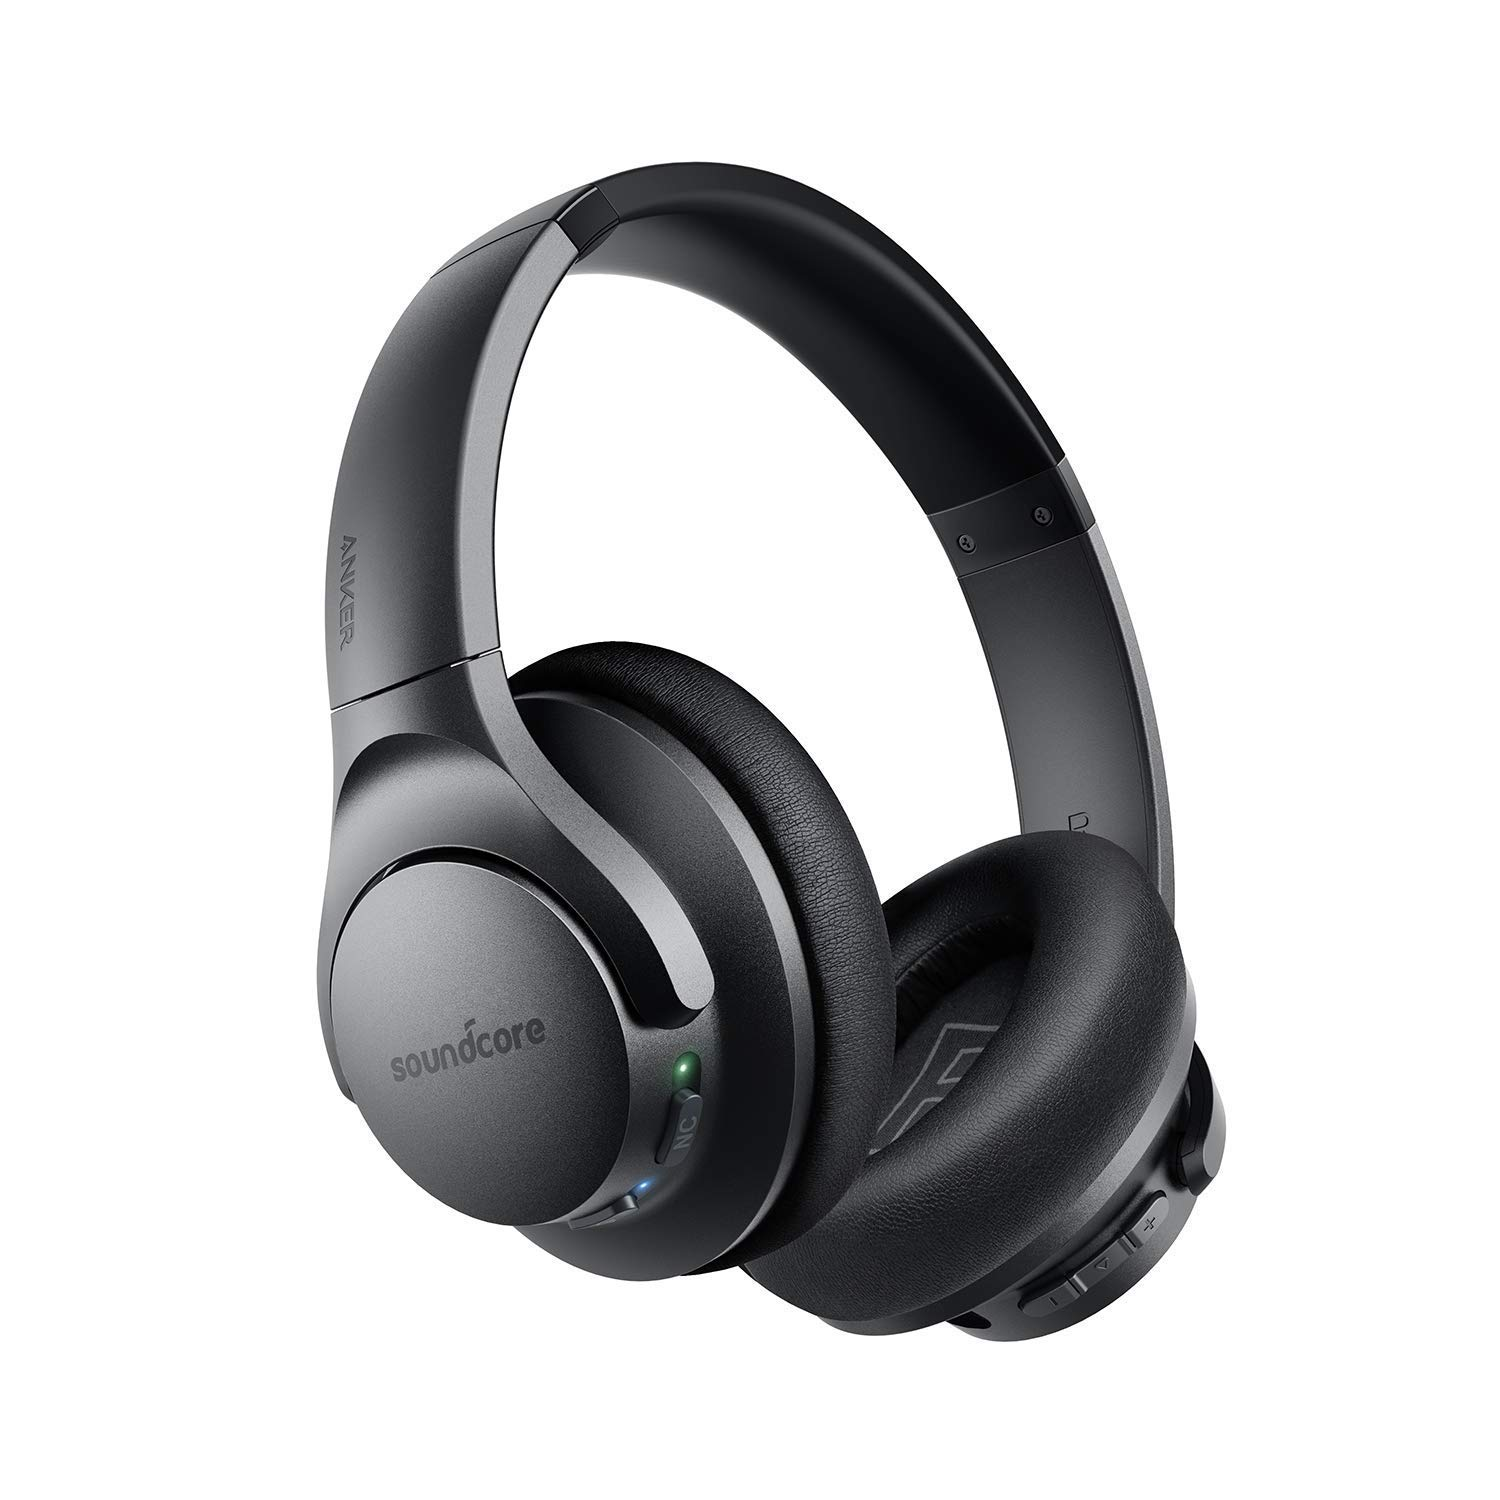 Anker Soundcore Life Q20 Hybrid Active Noise Cancelling Headphones, Wireless Over Ear Bluetooth Headphones with 40H Playtime, Hi-Res Audio, Deep Bass, Memory Foam Ear Cups and Headband (Renewed)